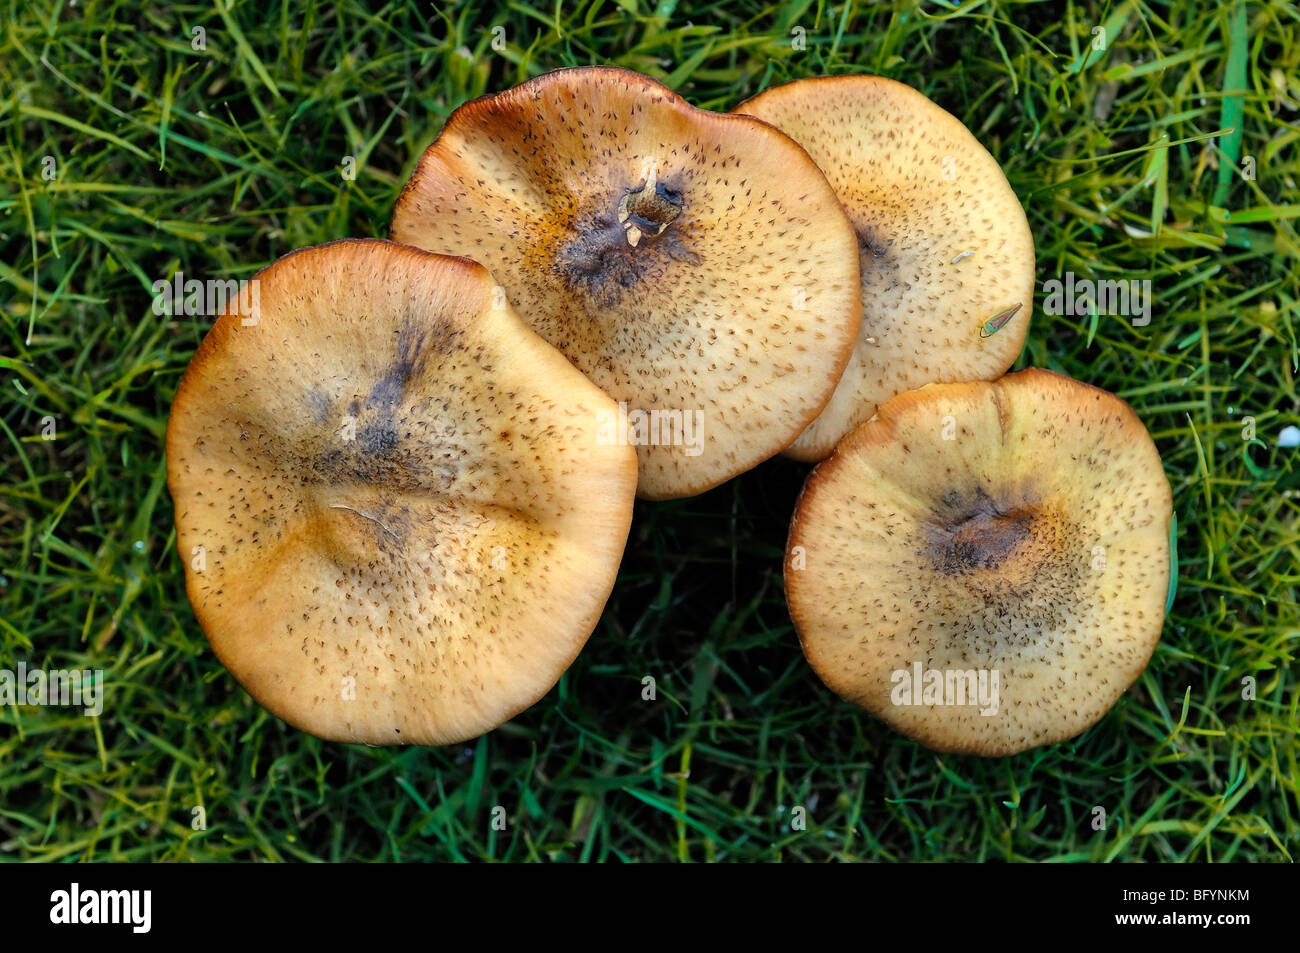 Brown fungi growing on grass in East Sussex, United Kingdom - Stock Image